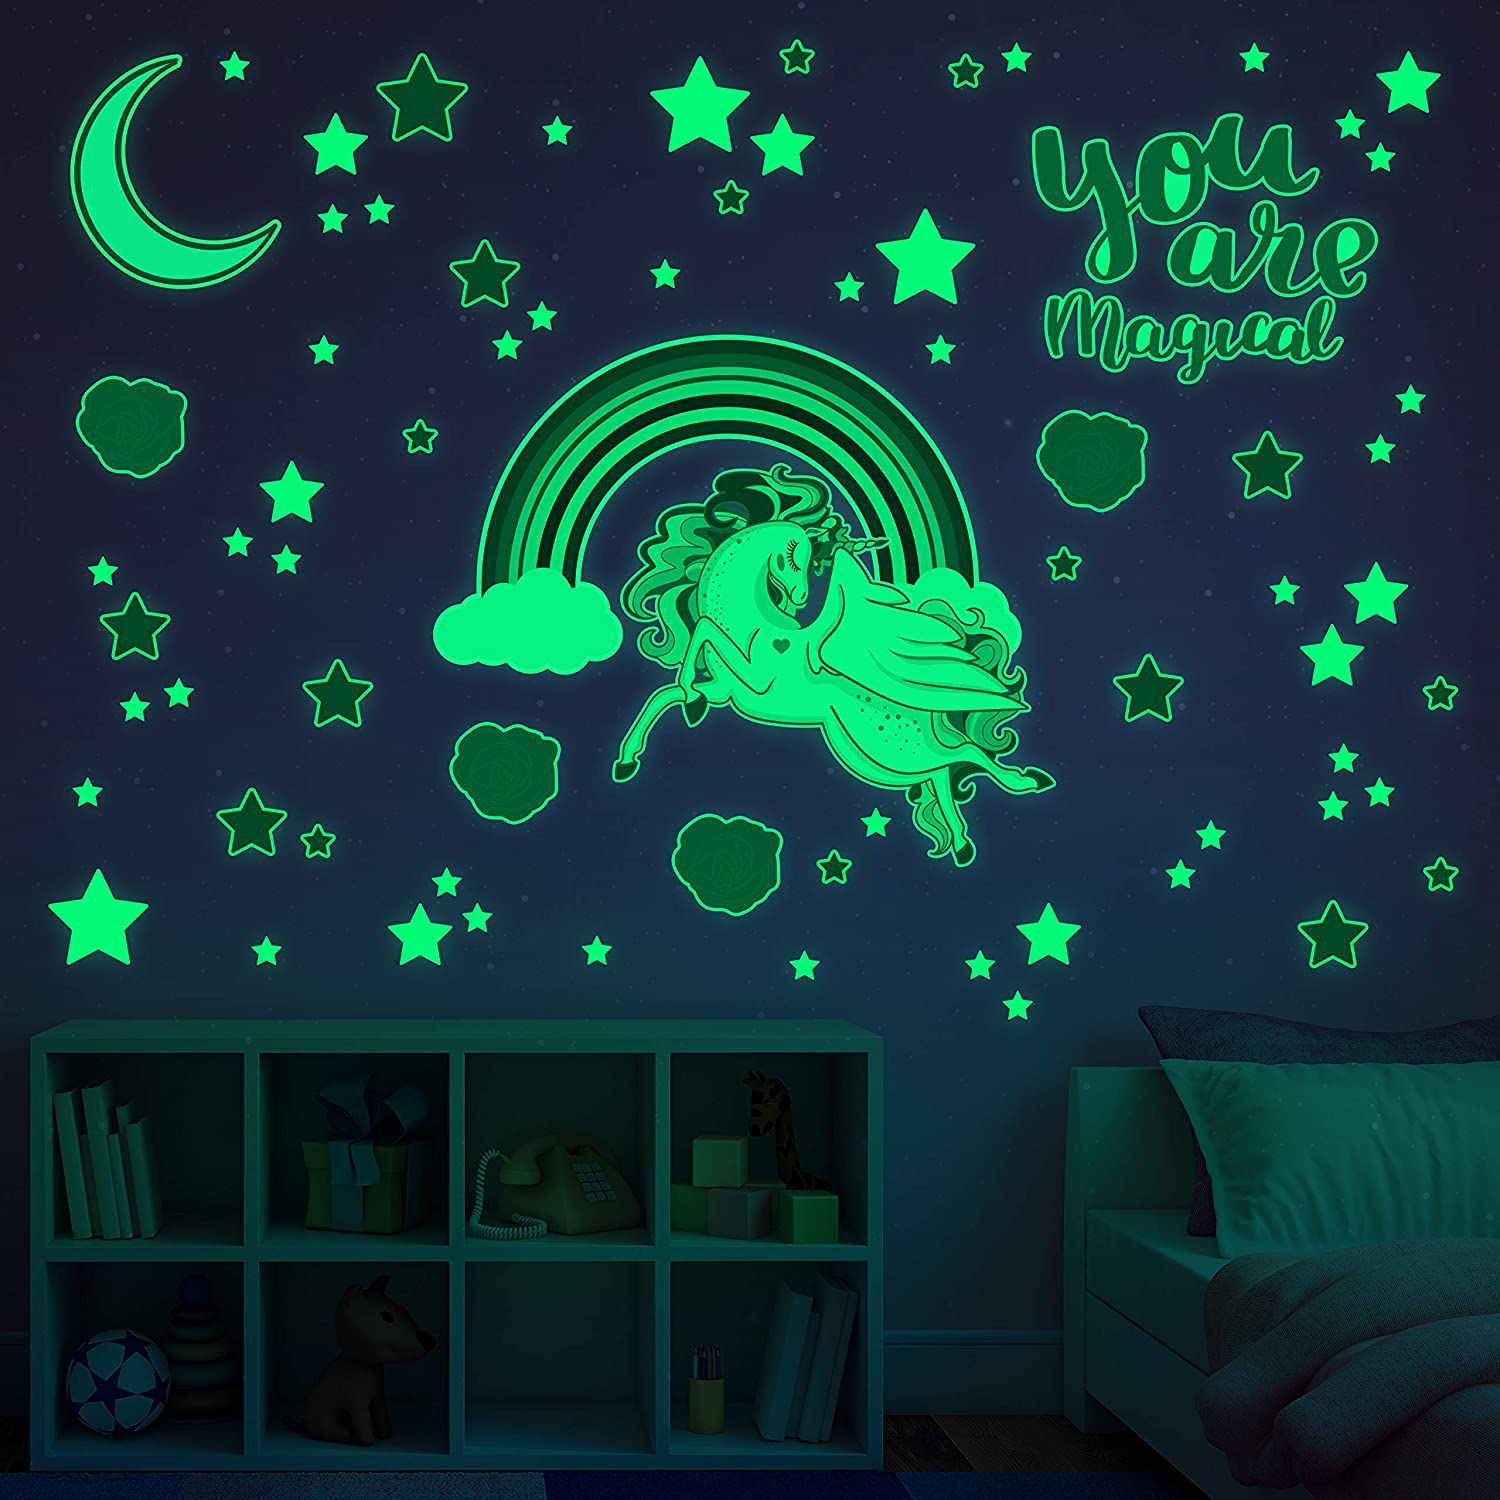 Glowing Snuggles Glow in The Dark Decals - Large Unicorn and Rainbow Wall Sticker Set for Kids with Stars Moon Roses -Unicorn Bedroom Decor for Girls - Unicorn Gifts for Girls